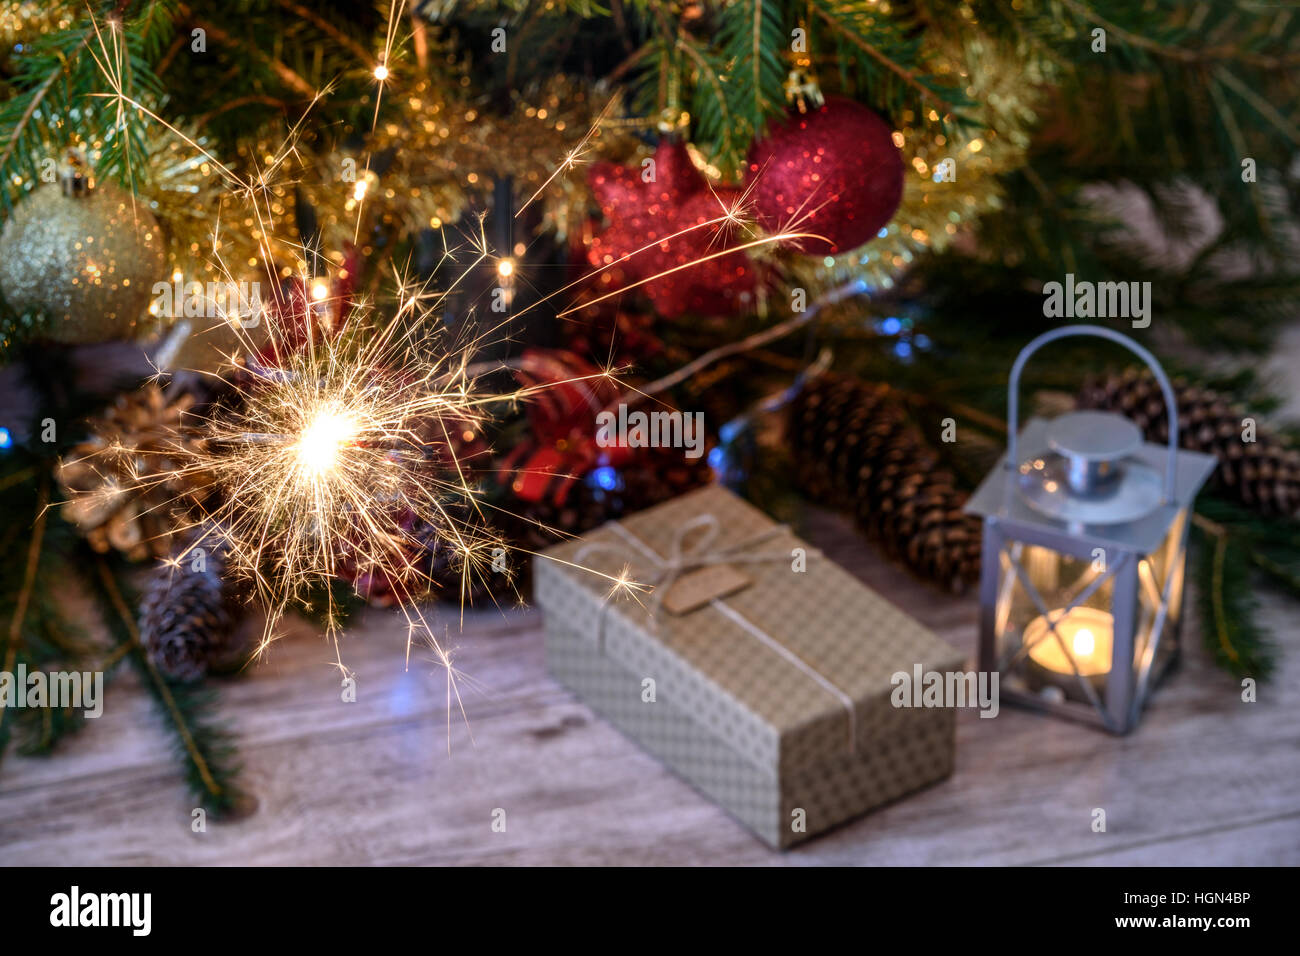 Sparklers and a gift with Christmas tree and lights Stock Photo